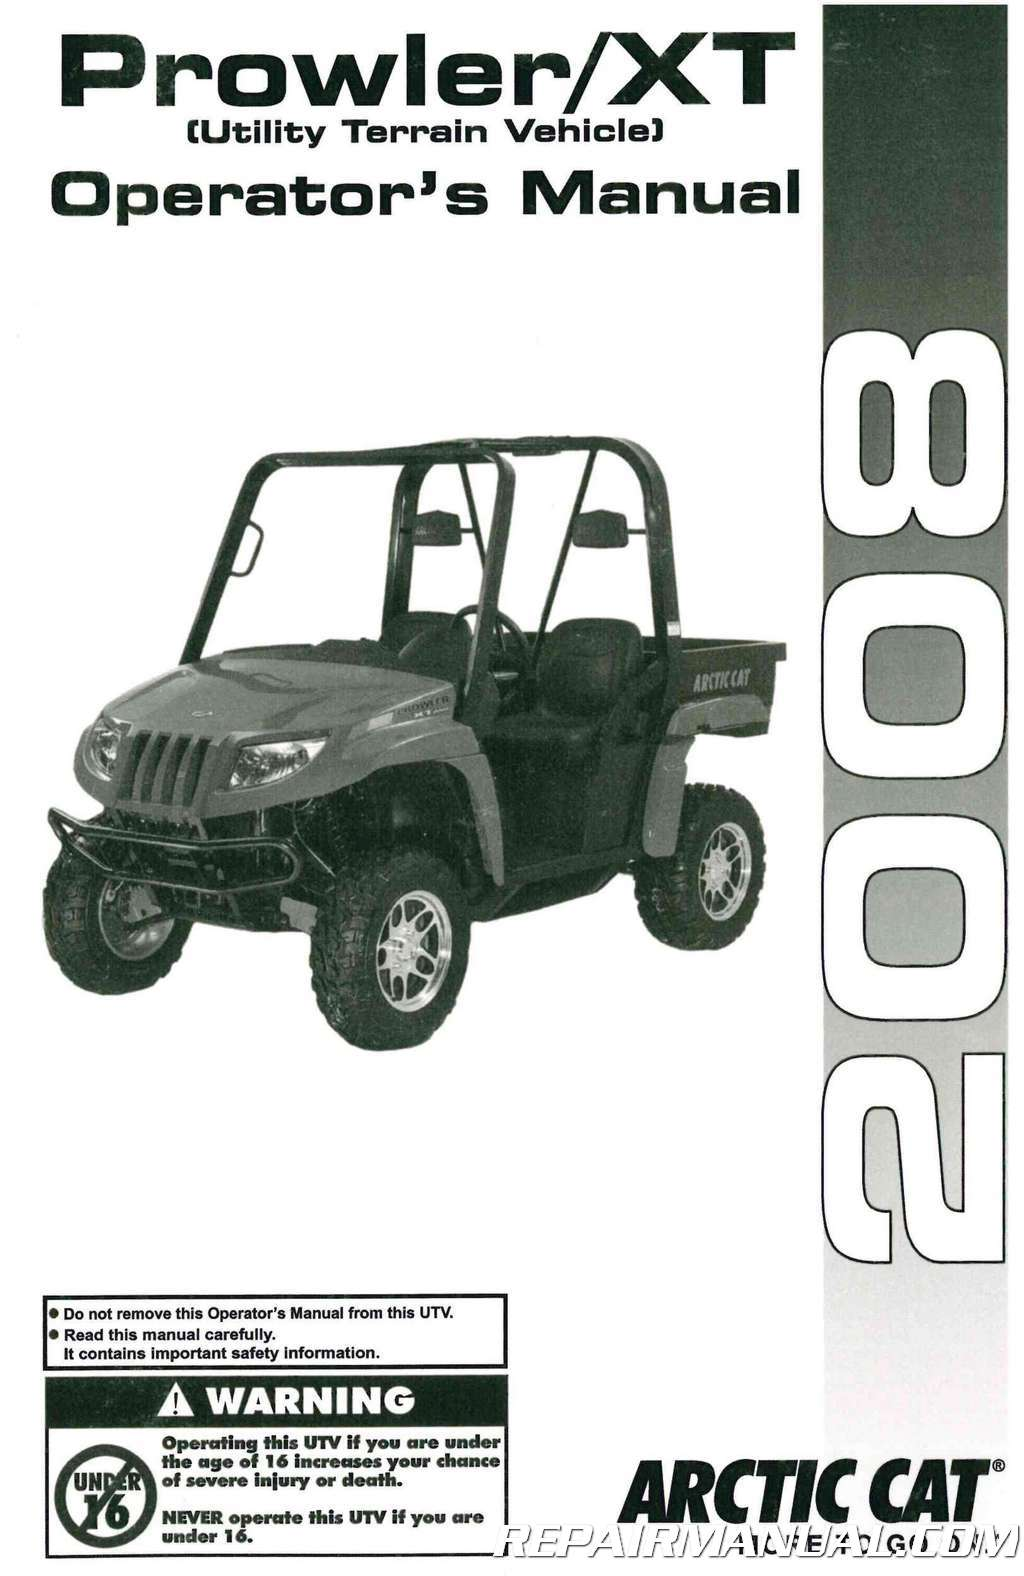 2008 Arctic Cat Prowler Xt Side By Side Owners Manual